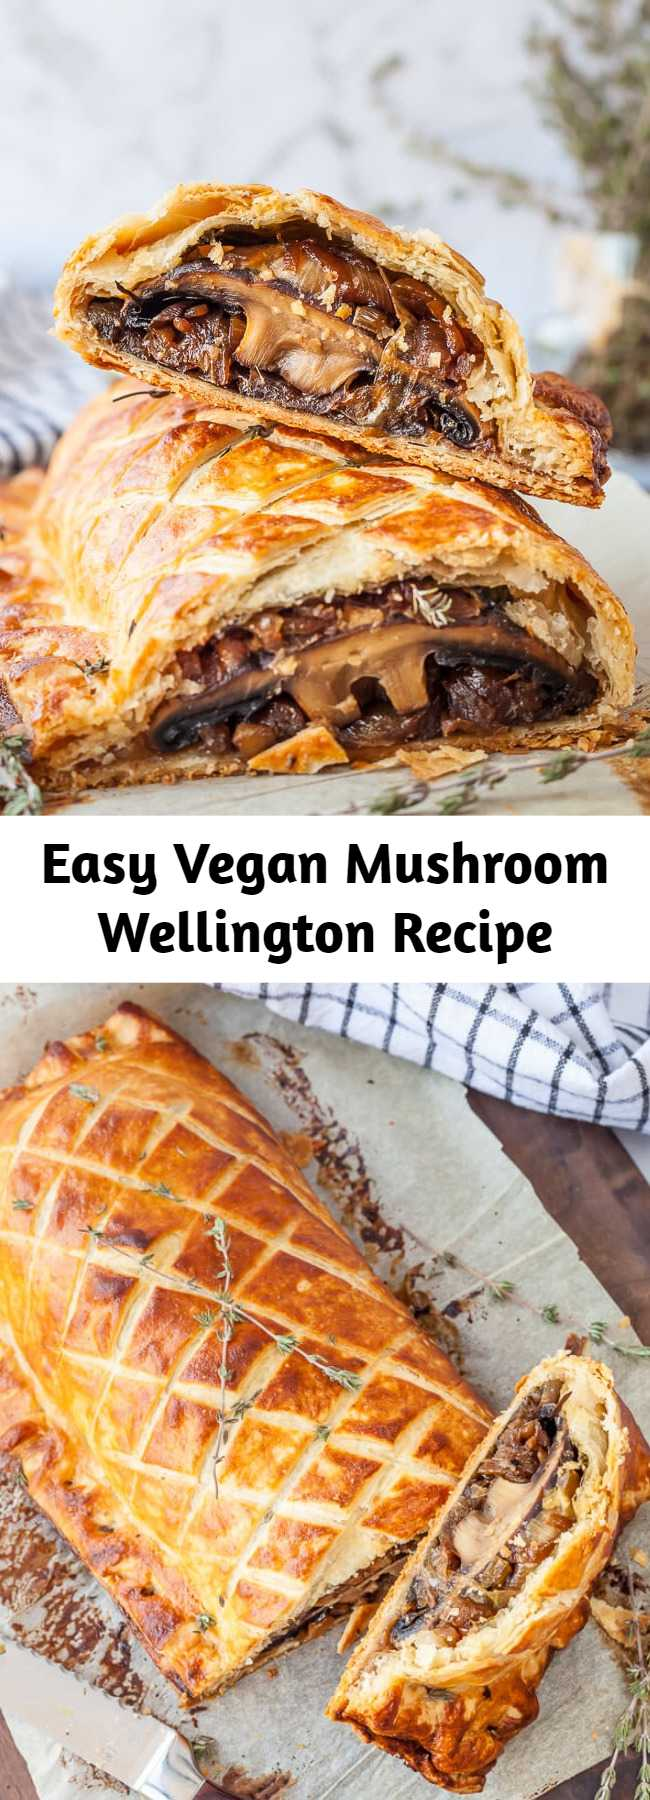 Easy Vegan Mushroom Wellington Recipe - A fantastic vegan version of the classic beef wellington. Tender mushrooms wrapped up in a flaky vegan puff pastry. This recipe is a perfect for a vegan Christmas or Thanksgiving entree, or any time you need a dish that impresses.